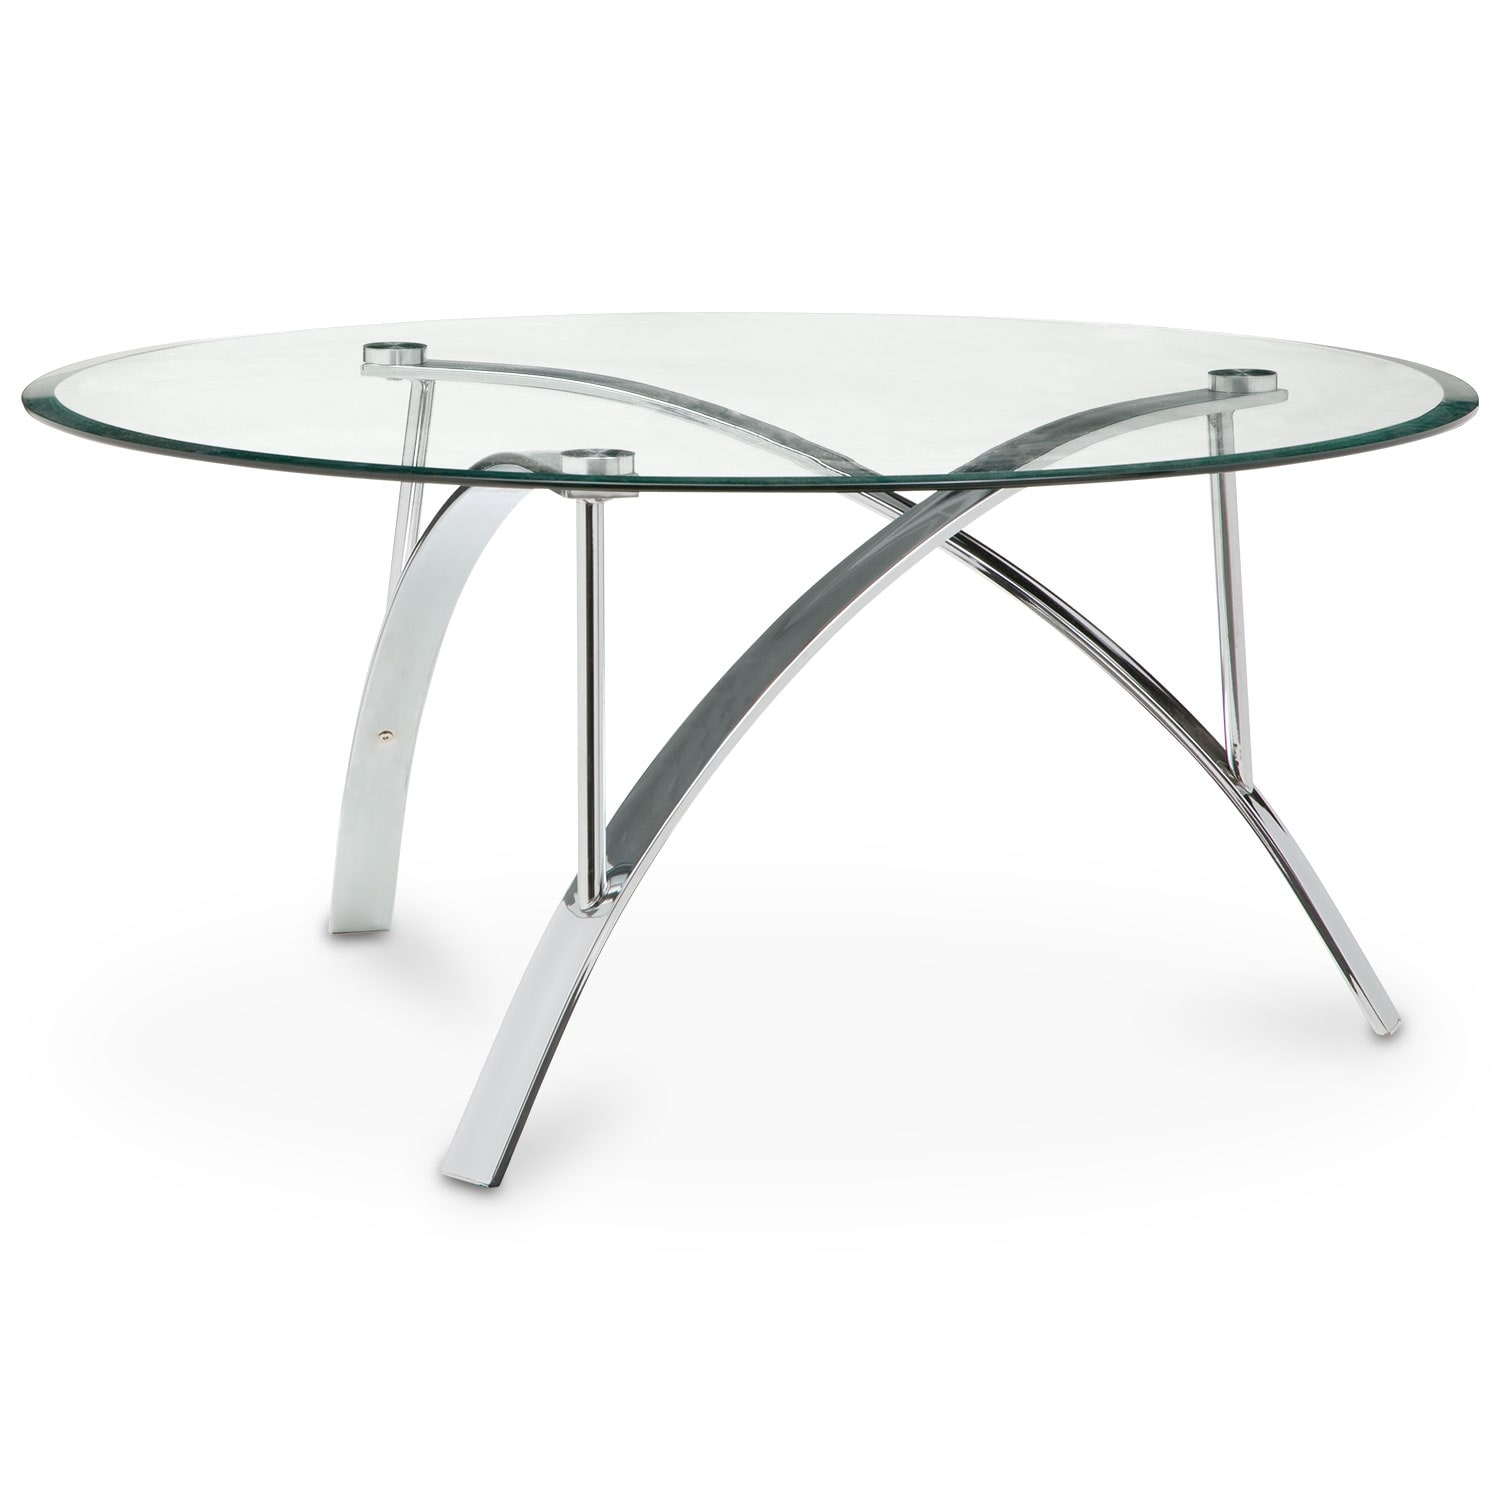 Mako cocktail table silver american signature furniture for Cocktail tables